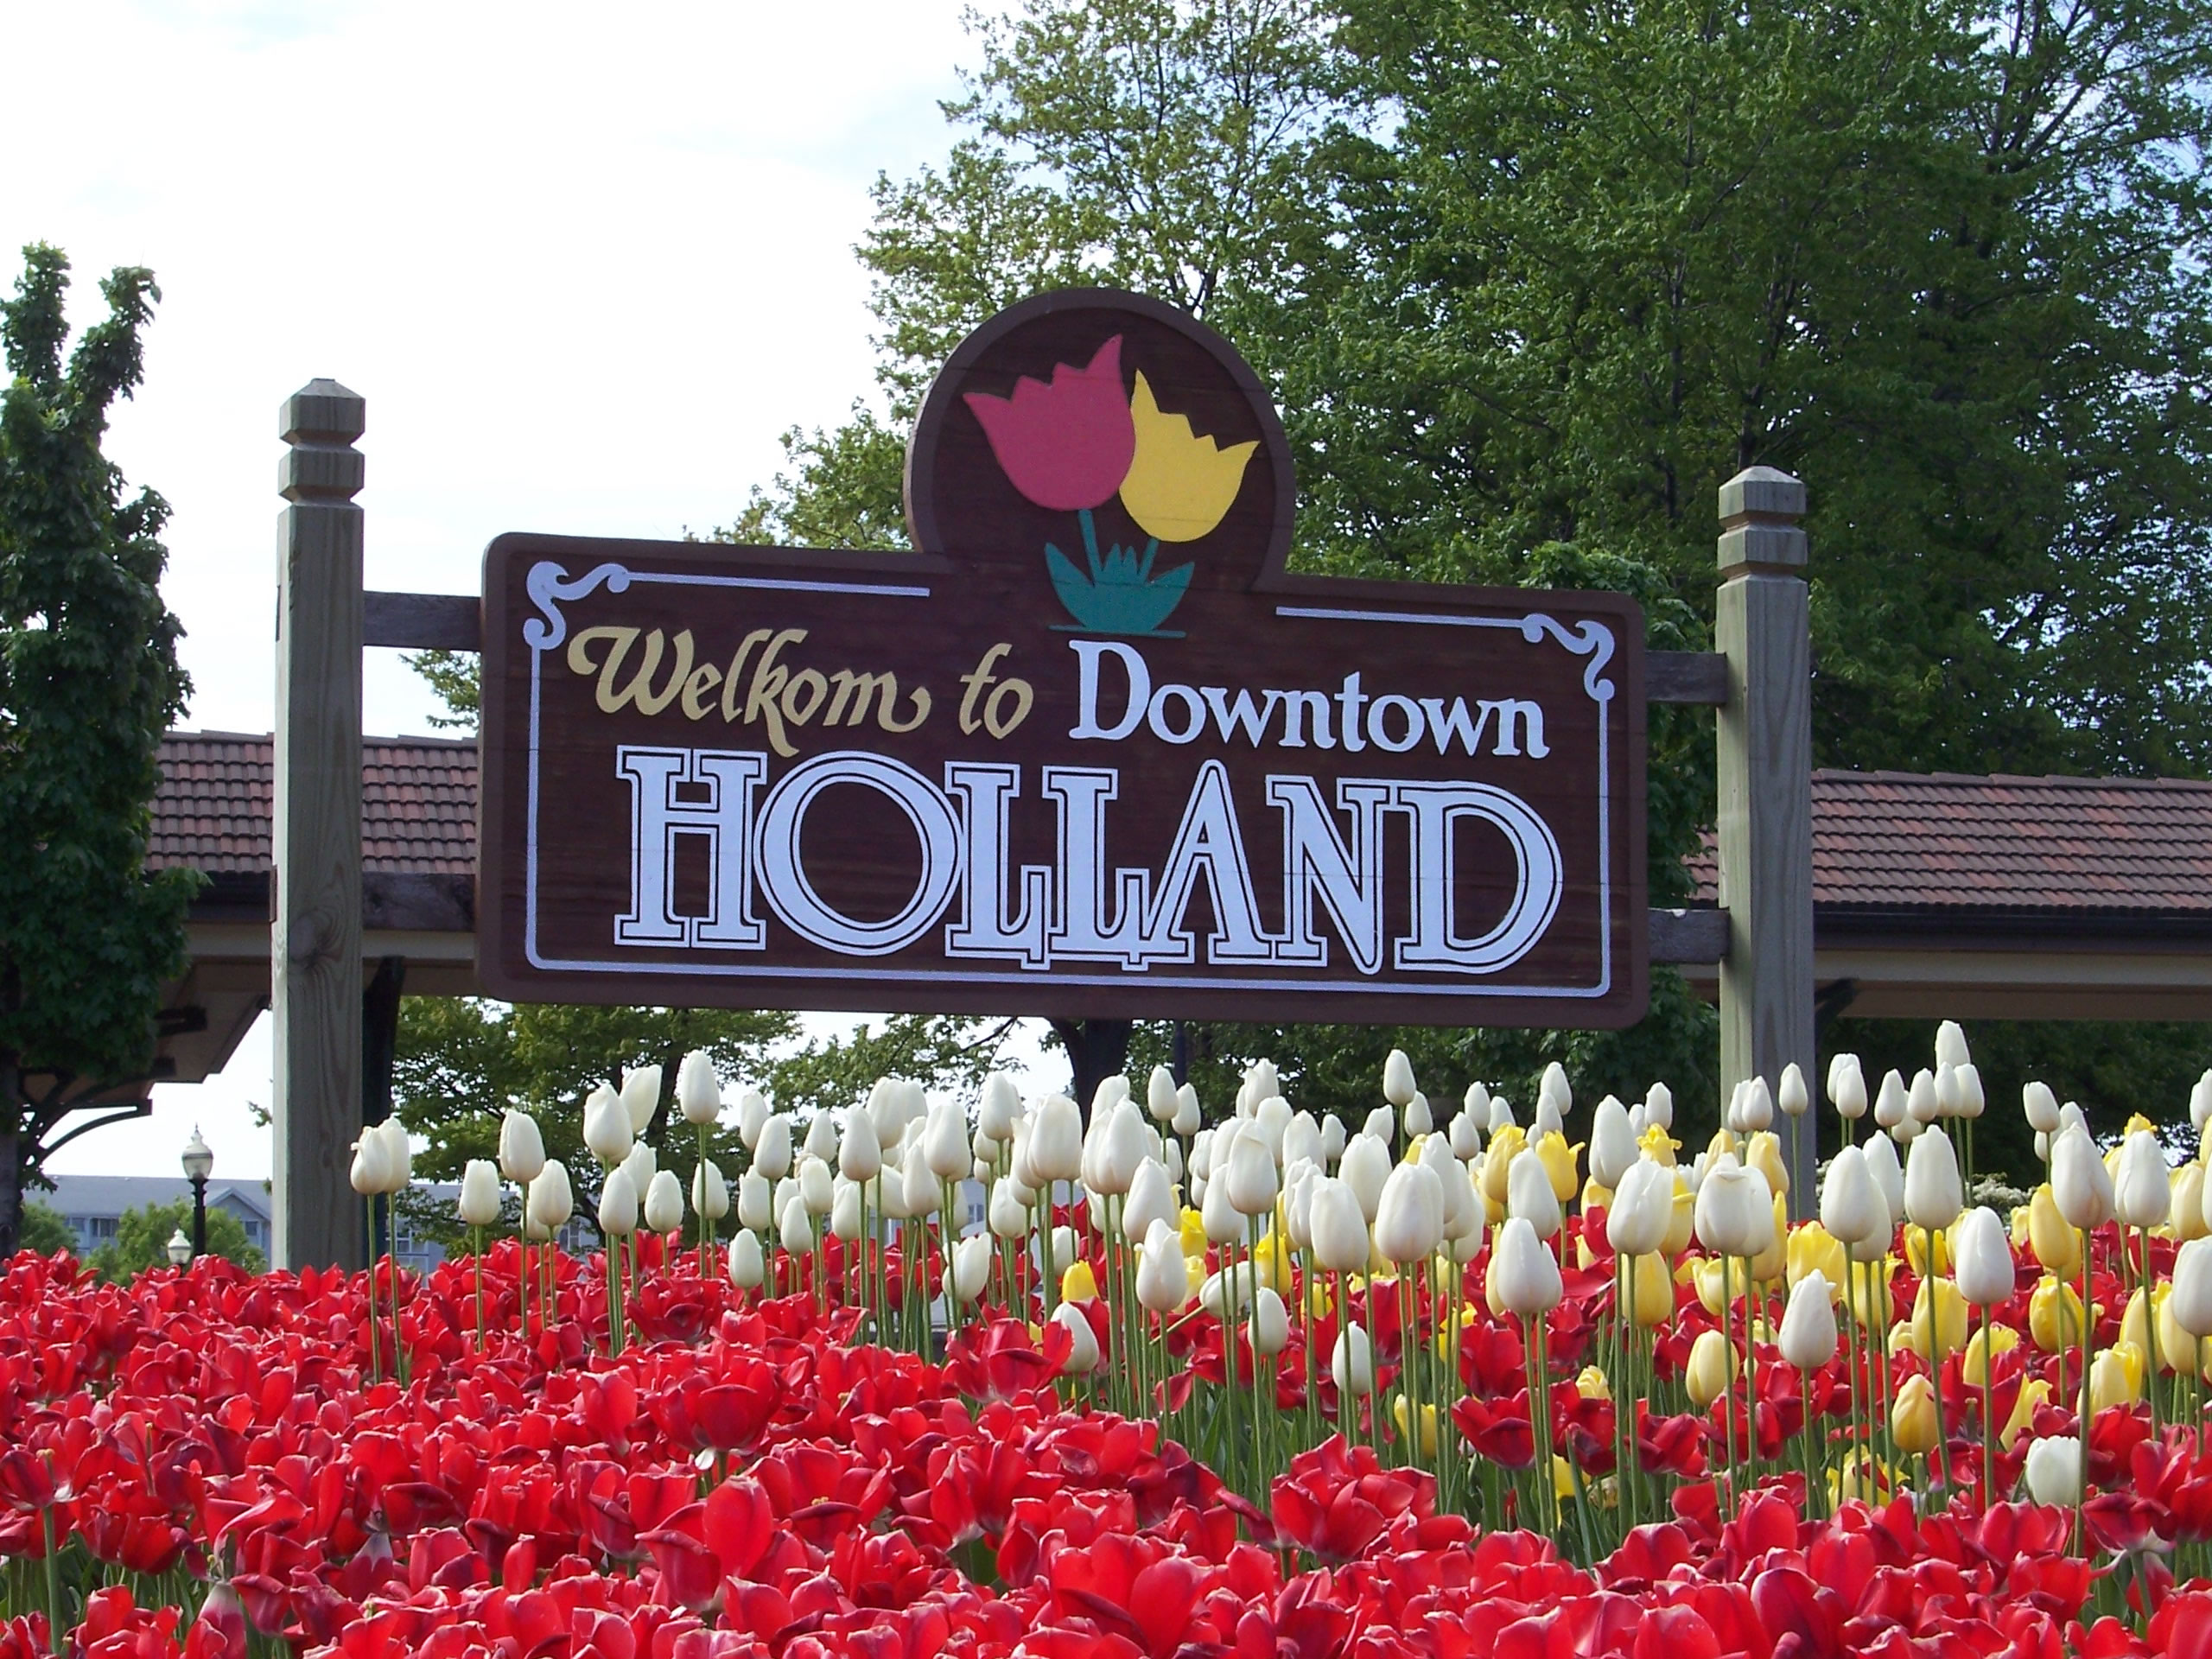 Holland is a city in the western region of the Lower Peninsula of the U.S. state of Michigan. It is situated near the eastern shore of Lake Michigan on Lake Macatawa, which is fed by the Macatawa River (also known locally as the Black River).